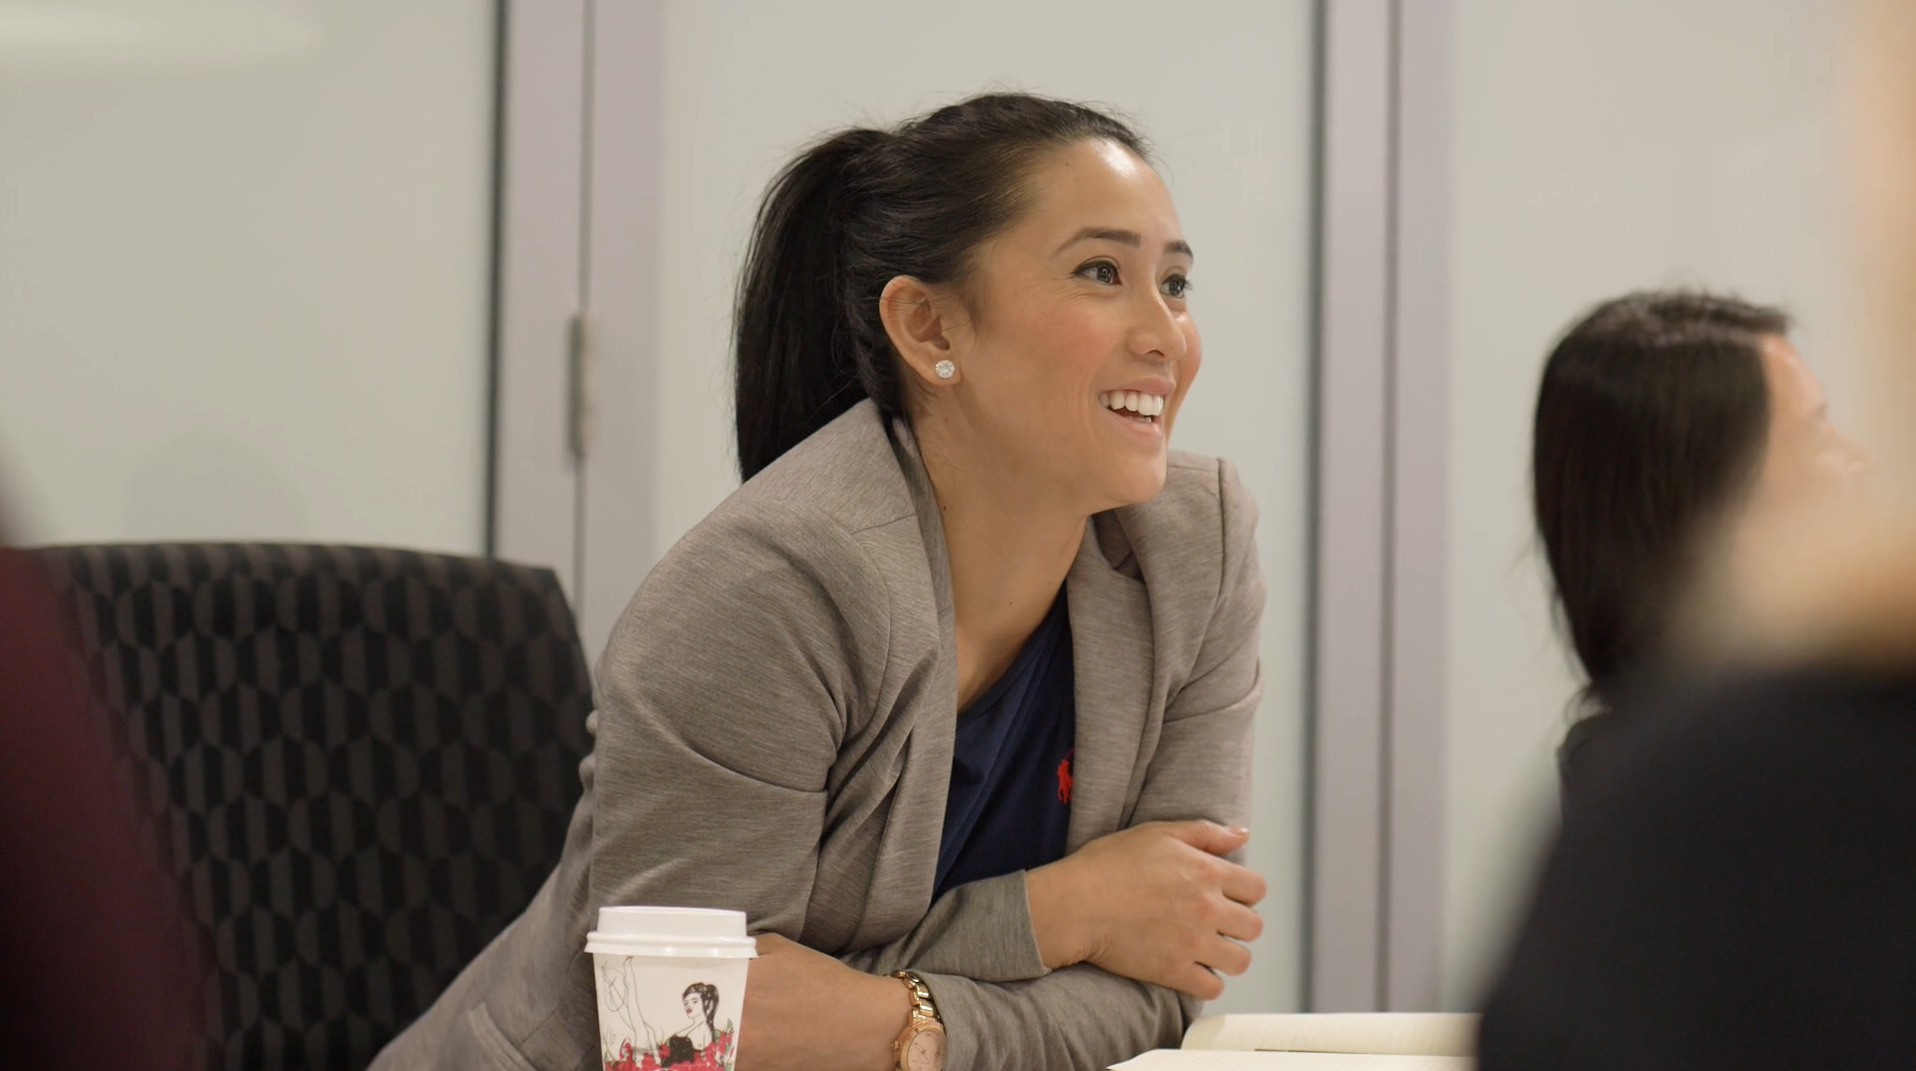 Lady in suit laughing sitting in conference room